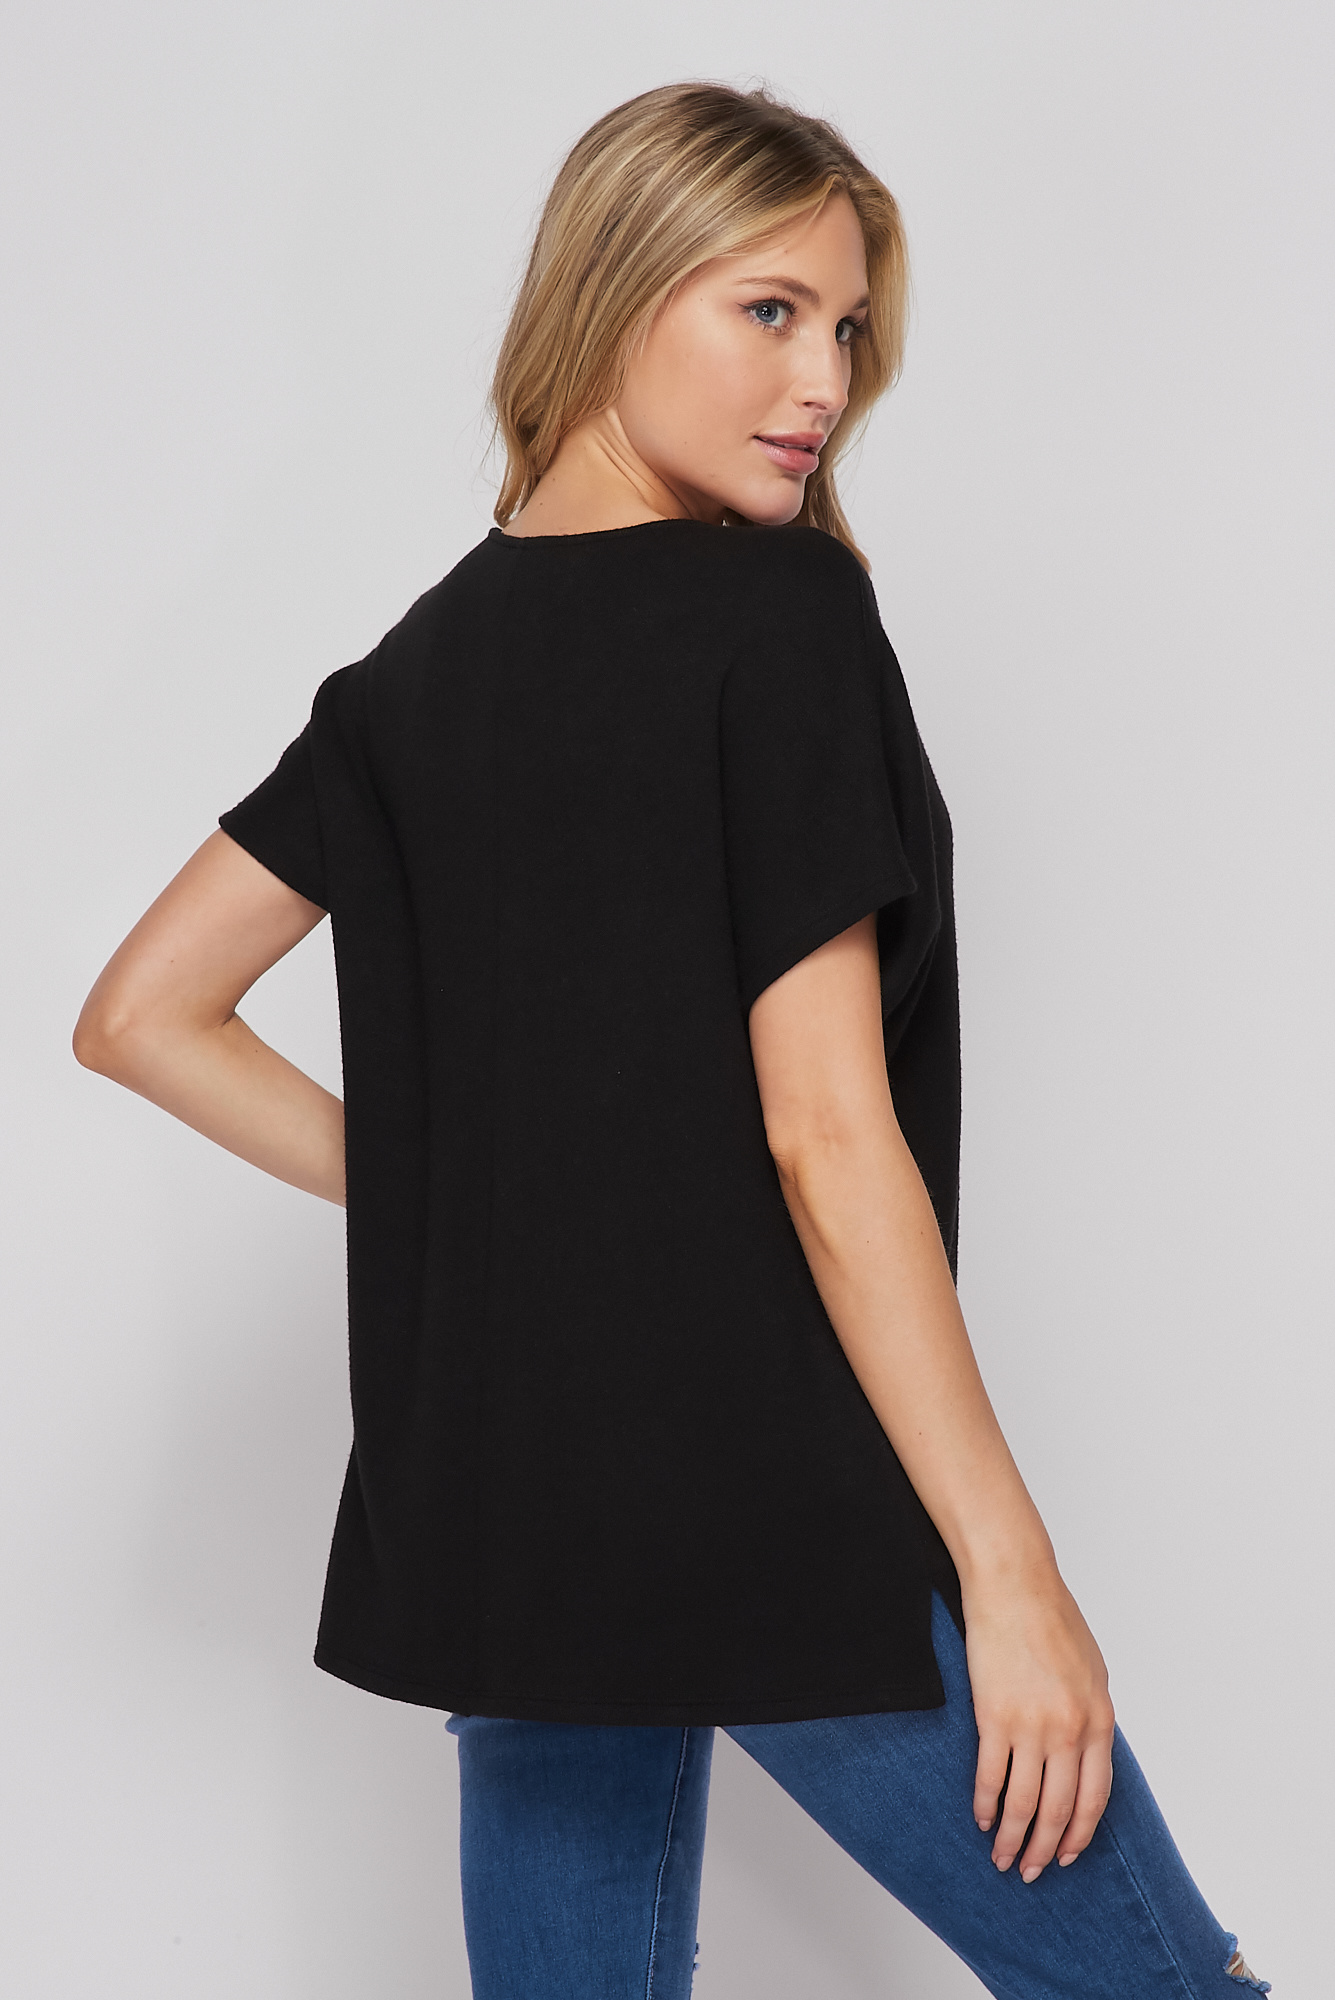 Honeyme Short Sleeve Top